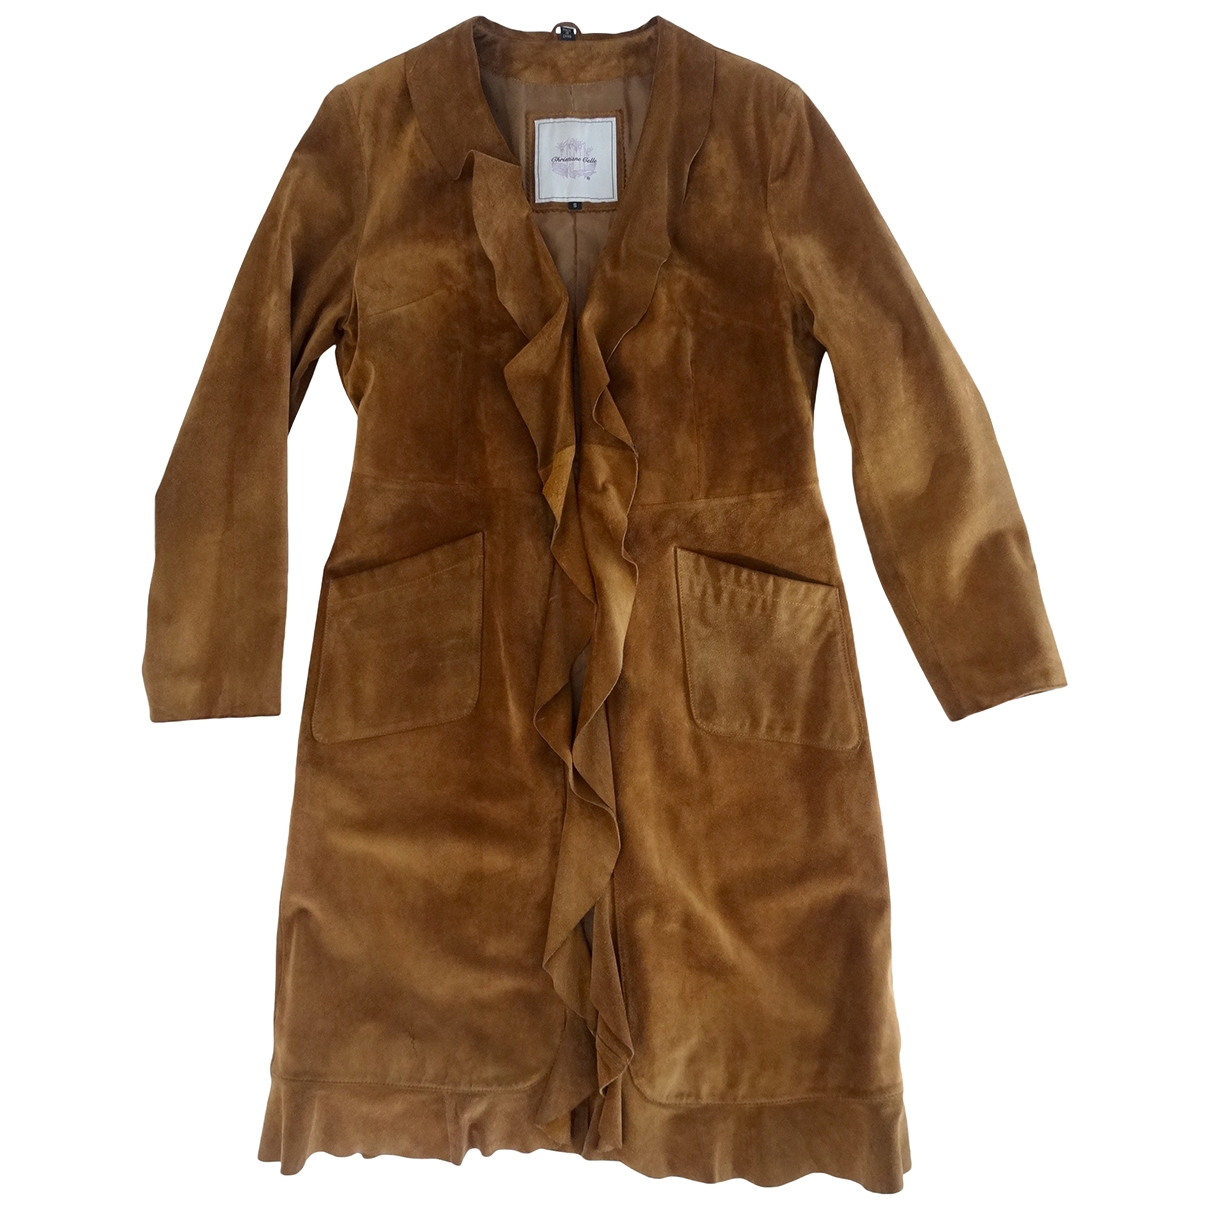 Christiane Celle \N Brown Suede coat for Women S International